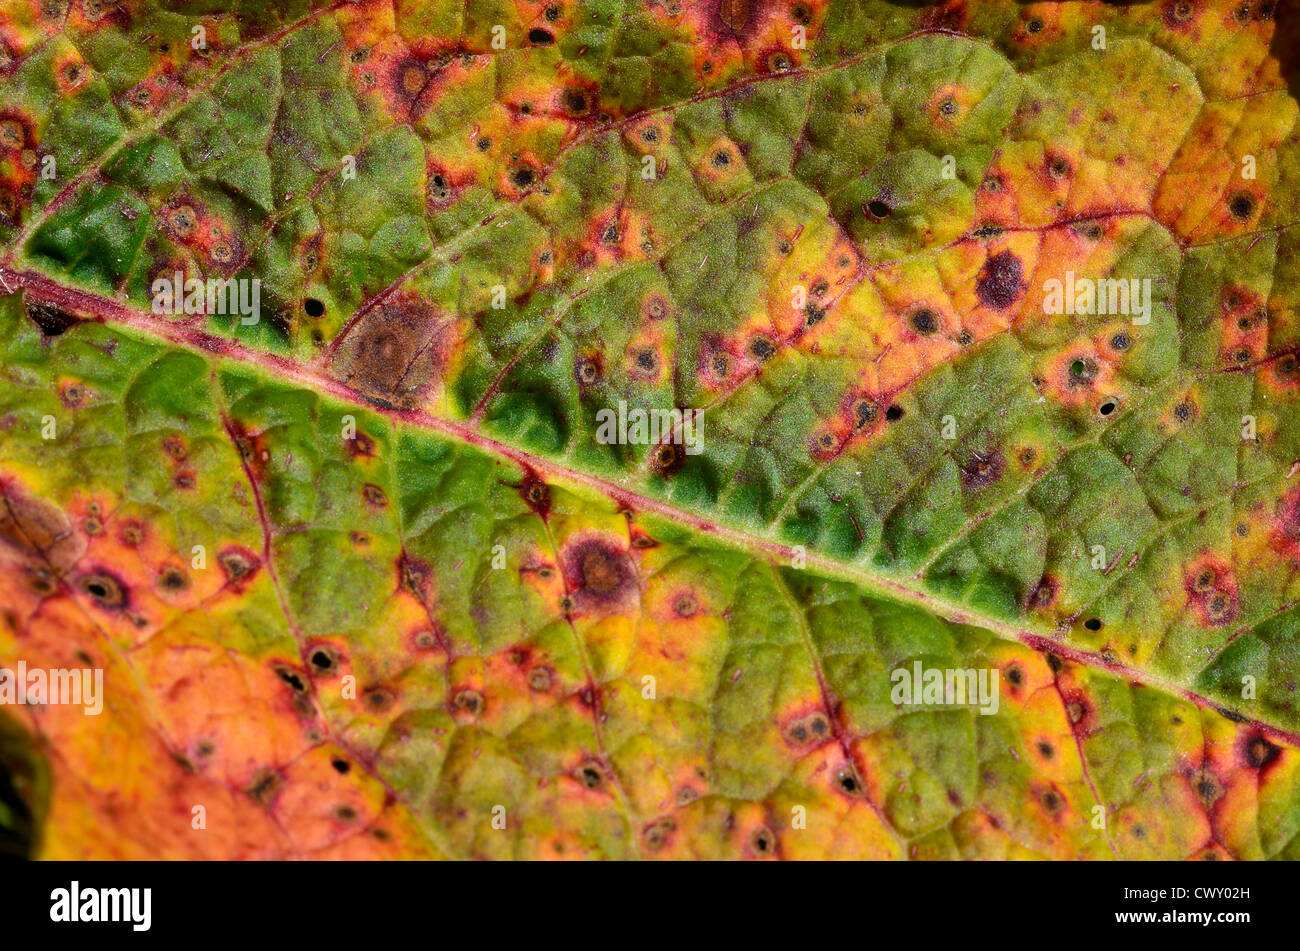 Close detail of diseased leaf of Broad-Leaved Dock (Rumex obtusifolius) - possibly from Ramularia rubella. Focus - Stock Image